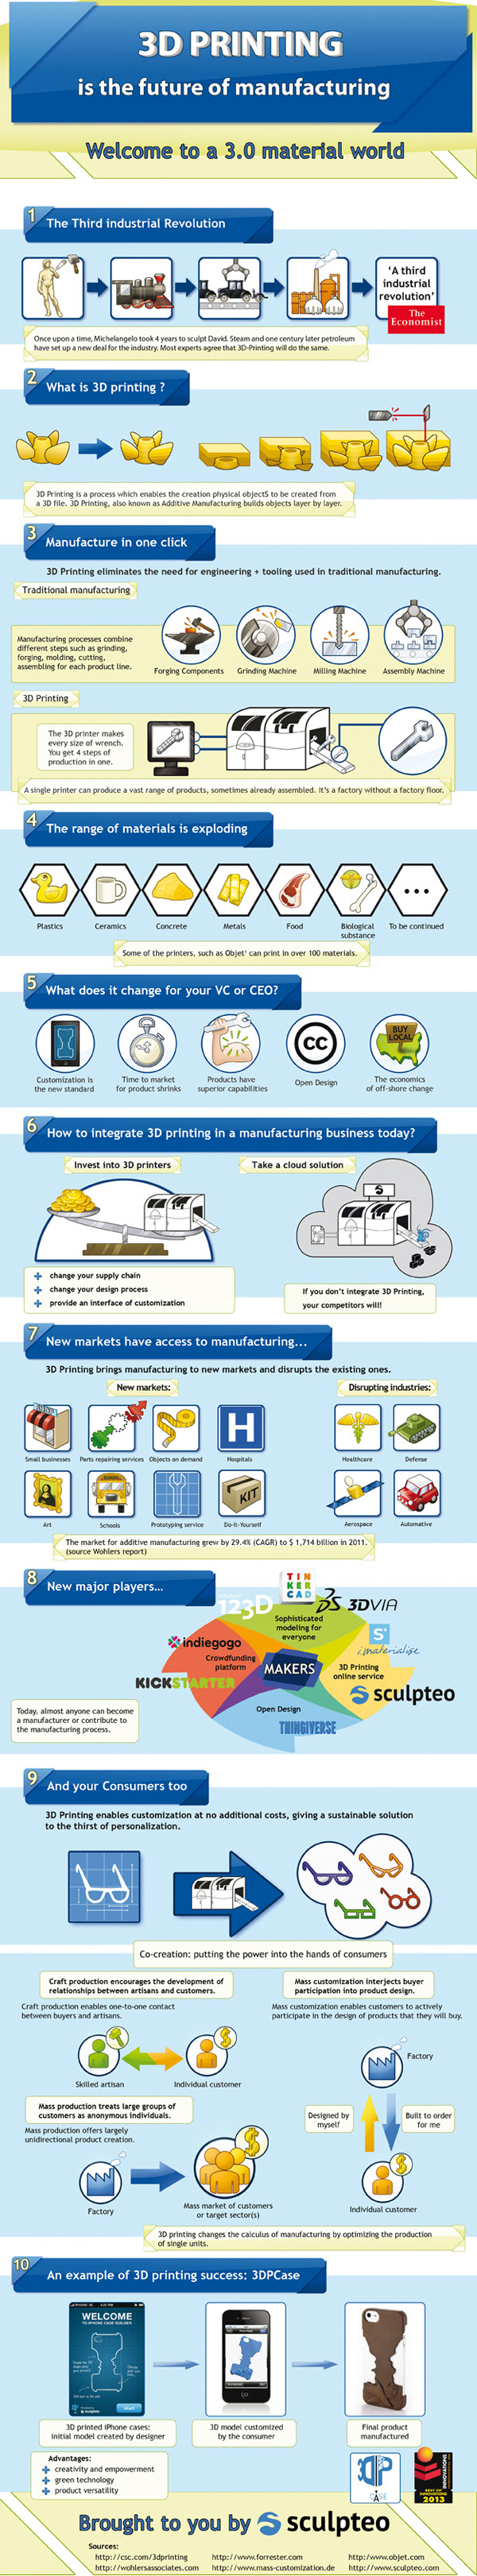 The Future of Manufacturing-Infographic